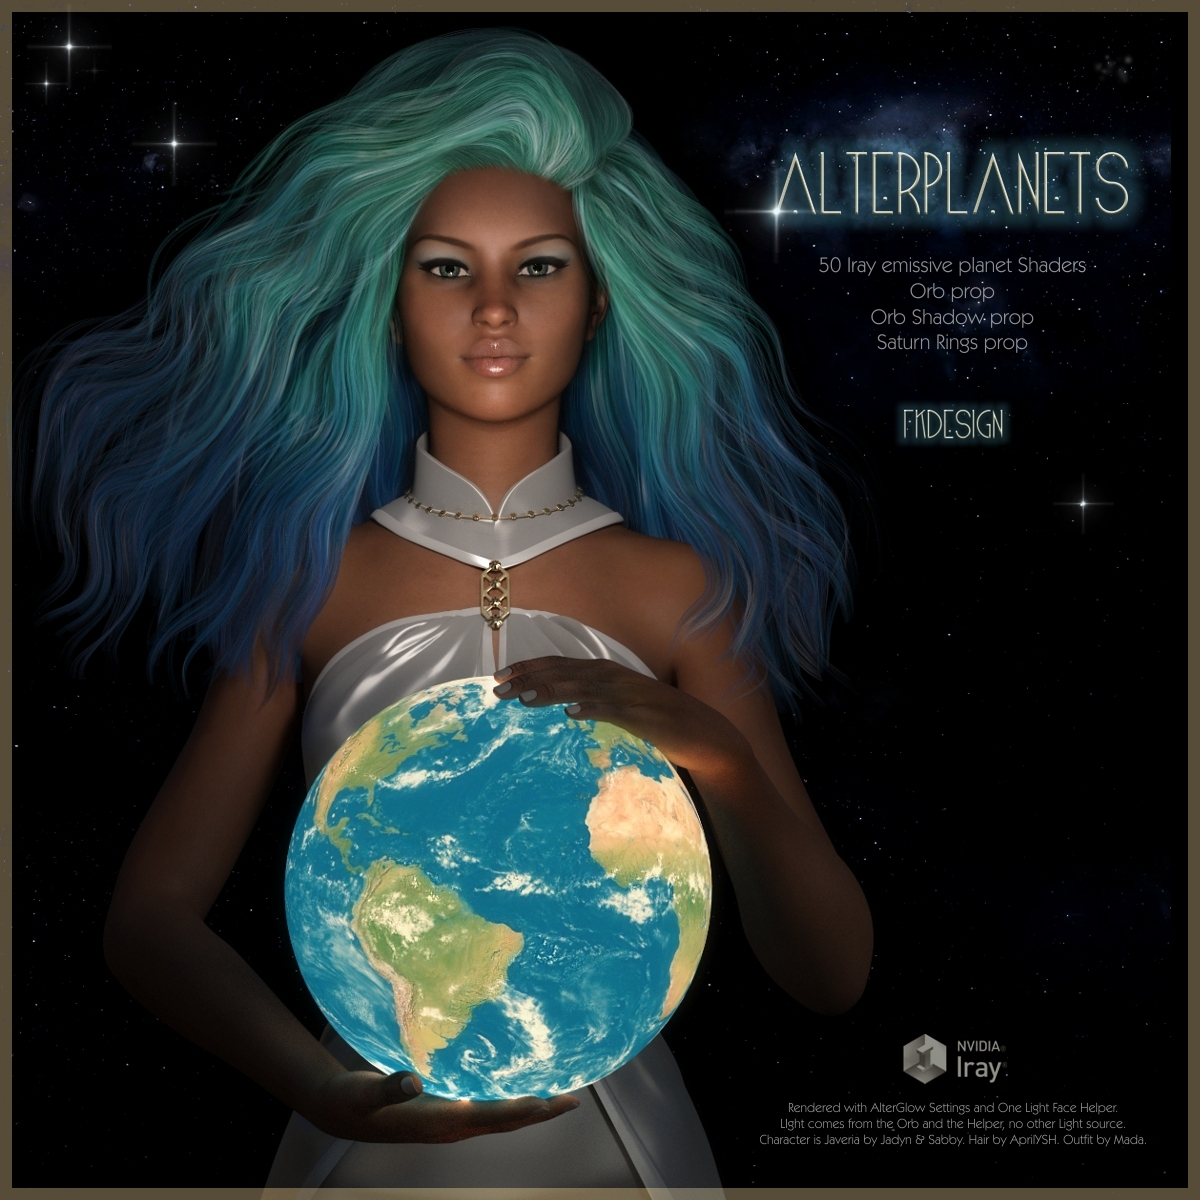 AlterPlanets Iray